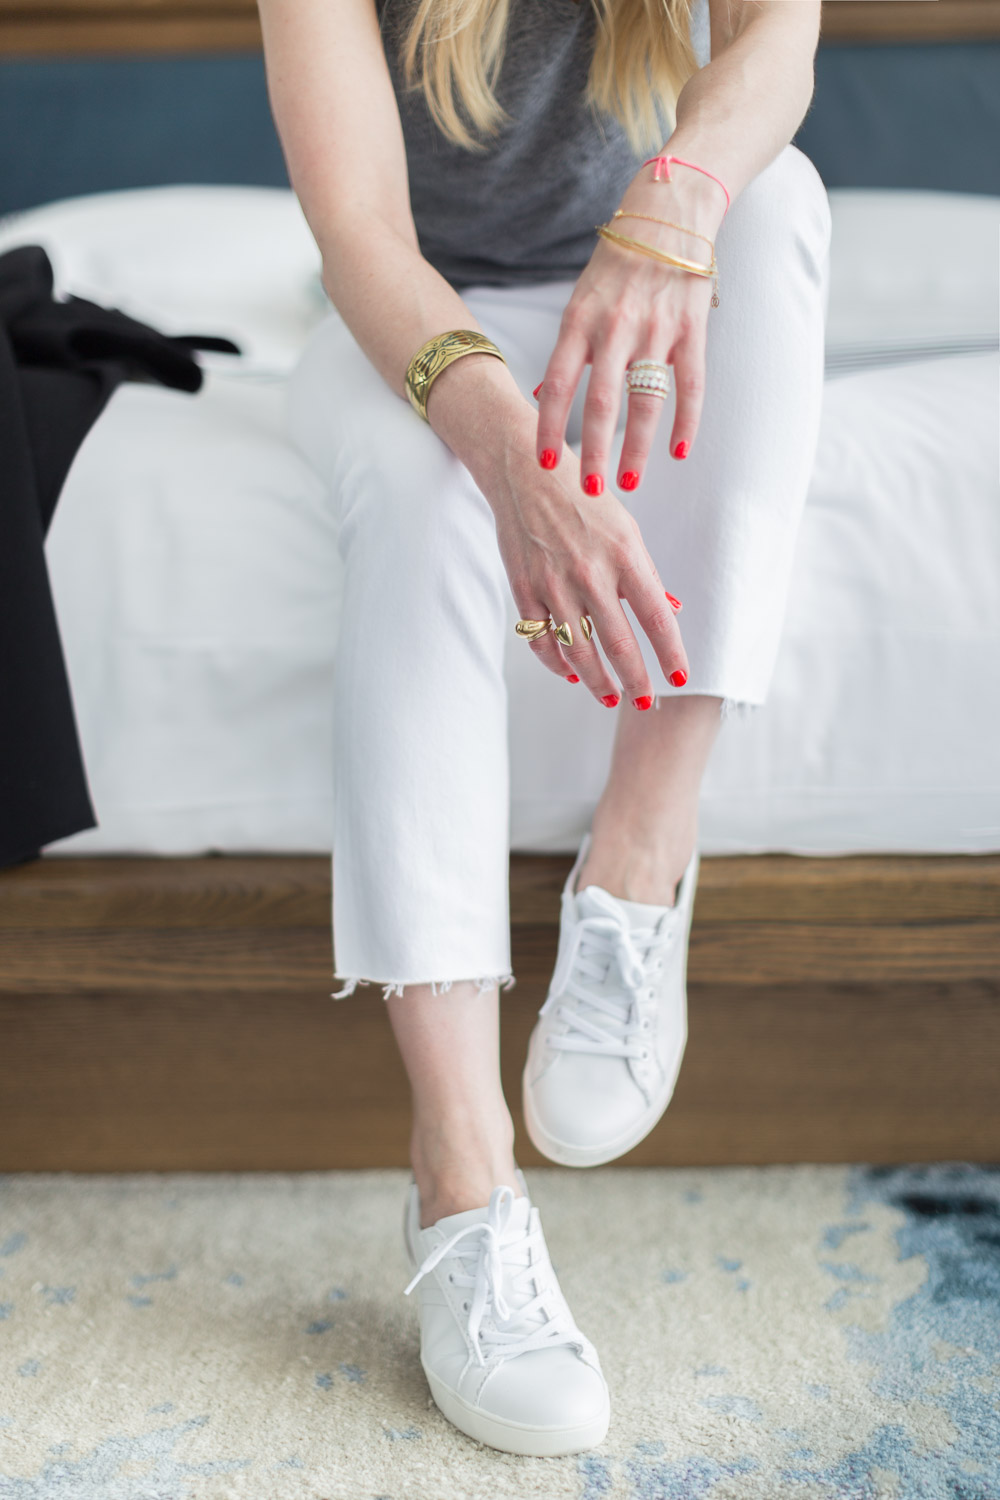 Alyssa Rosenheck The New Southern with Naturalizer - Speaker, Photographer, Cancer Survivor, lifestyle expert National Campaign in Nashville TN - Fall Travel Look  - White Jeans